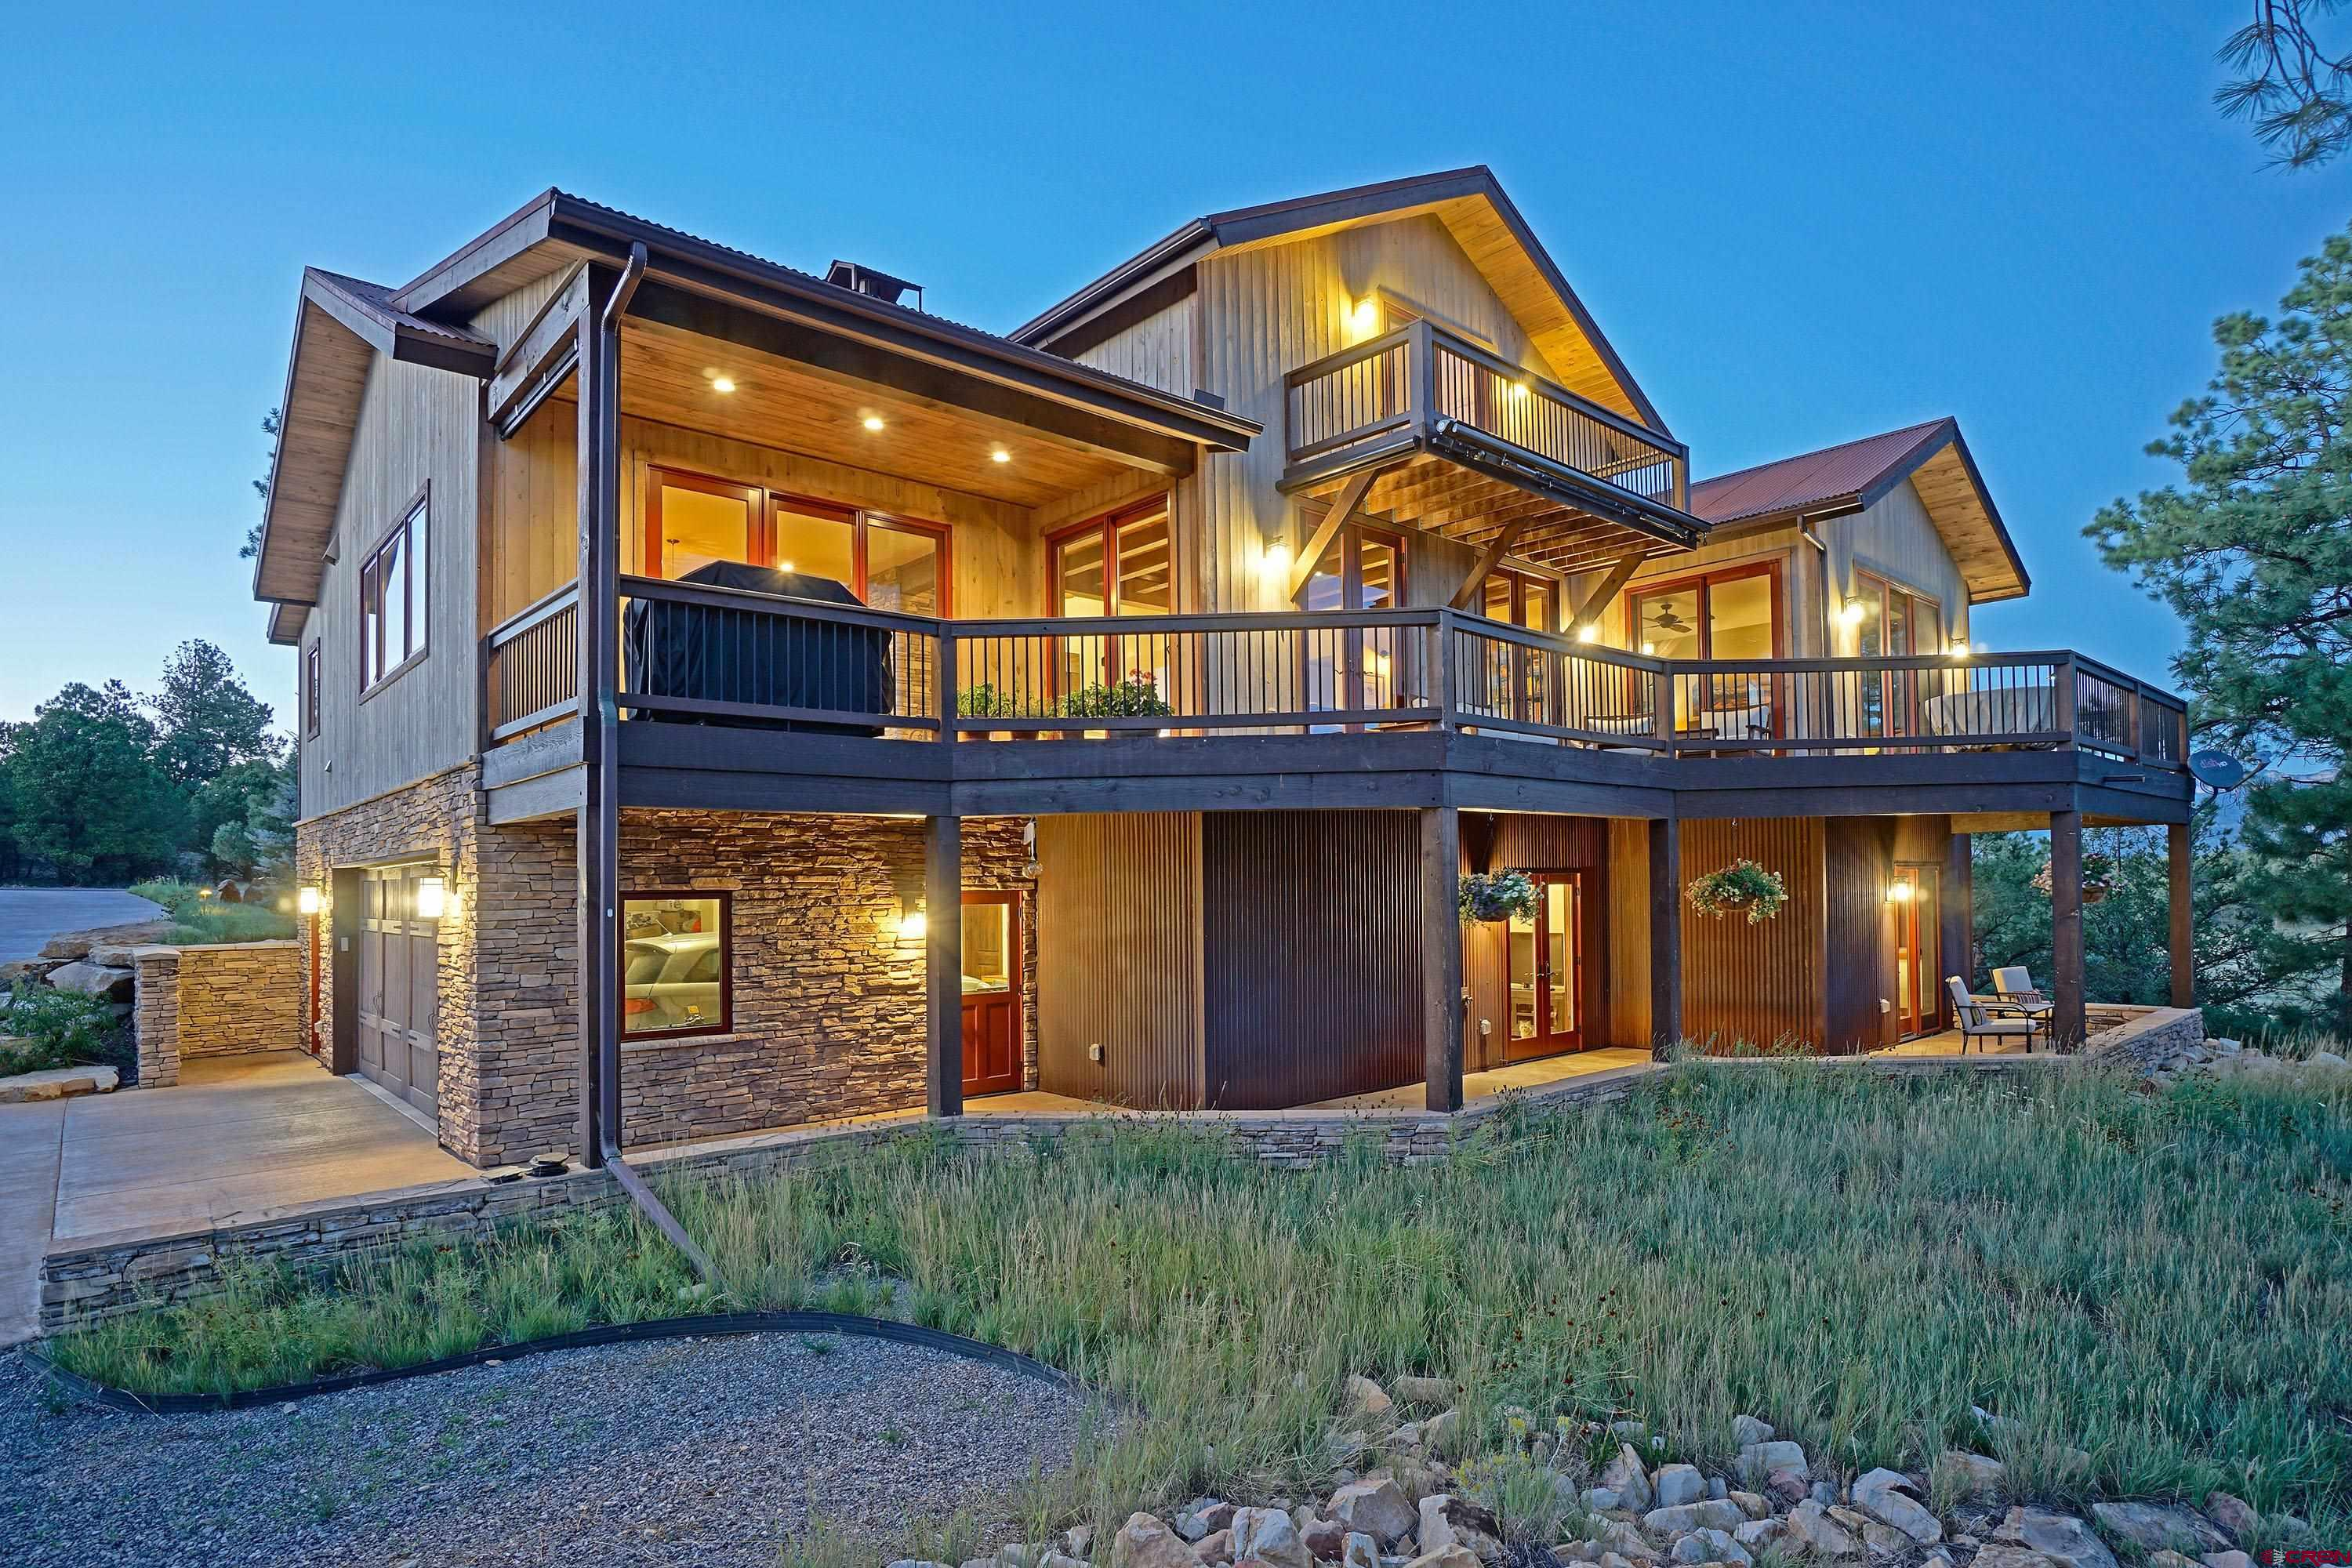 """This custom built home in Fairway Pines Estates and the Divide Ranch and Club golf course shows incredible pride of ownership and is the very definition of move-in-ready!  The property is located on a cul-de-sac and adjoins open space with a view of Mount Sneffels, the San Juans, and Cimarron mountains from the main and upper level decks.  Upon entering the home you will be amazed at the openness and very high quality finishes throughout.  In the living room there is a 2-story stone fireplace (gas) with a slate hearth, beam mantle, and forged steel fireplace doors.  Just off the living room area there is a separate formal dining area with a wall of windows/doors to take in the forest/valley views.  To the west of the living/dining rooms is the true jewel of this home which has to be seen to be believed - an enormous kitchen with some of the highest end finishes and appliances available!  When you walk into the kitchen, you'll quickly notice the stainless steel Viking 48"""" dual fuel double oven/range with a Zephyr range hood.  Next to that is the Viking refrigerator/freezer.  In the center of the kitchen is a large island with a seating area, built-in drawer-style microwave, wine refrigerator/cooler, and a custom made mahogany counter top.  The cabinetry is knotty alder with leaded glass accents and inset door/drawer fronts.  To top it off, there are granite counter tops and a slate tile backsplash with decorative accents.  The master bedroom is on the east side of the house on the main floor.  It has a large walk-in closet, great San Juan views, and a master bathroom with soaking tub, travertine tile, granite counters, and oil-rubbed bronze fixtures/lighting.  The shower is absolutely enormous with a built-in bench, decorative tile features, and multi-function shower and rain heads.  Going to the 3rd level of the house you have a large loft area that could be used for a multitude of purposes.  The loft also has it's own deck with great Cimarron views.  The lower leve"""